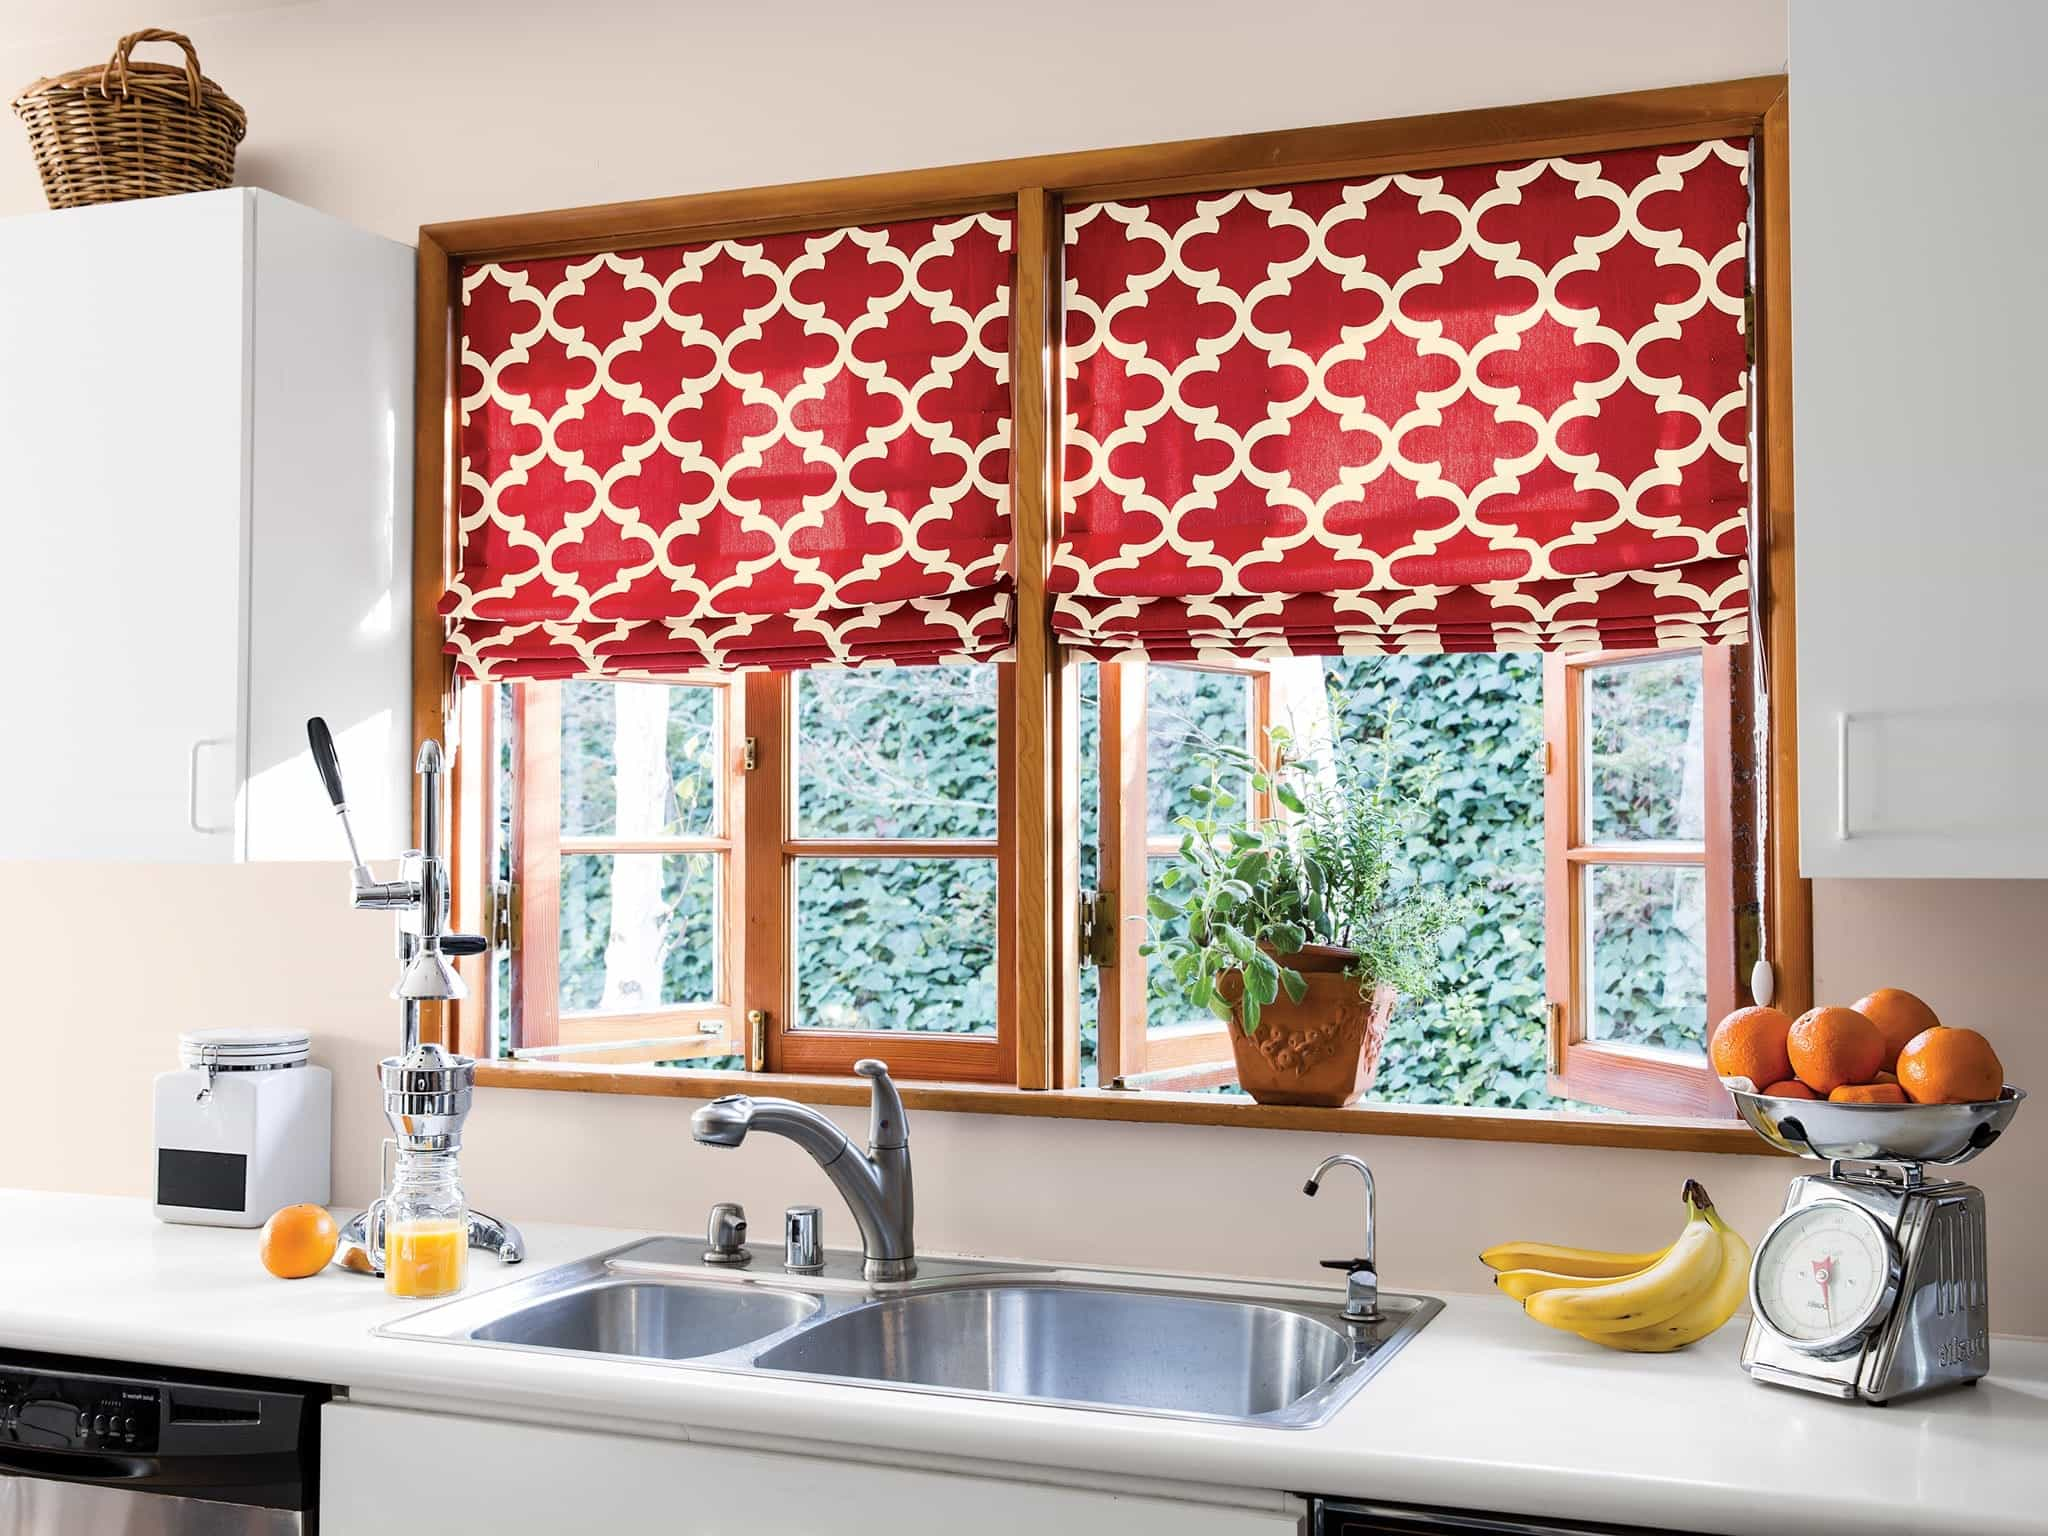 Diy kitchen window coverings home interior designer today impressive diy kitchen window curtains 23637 kitchen ideas rh gotohomerepair com diy kitchen window treatments solutioingenieria Images